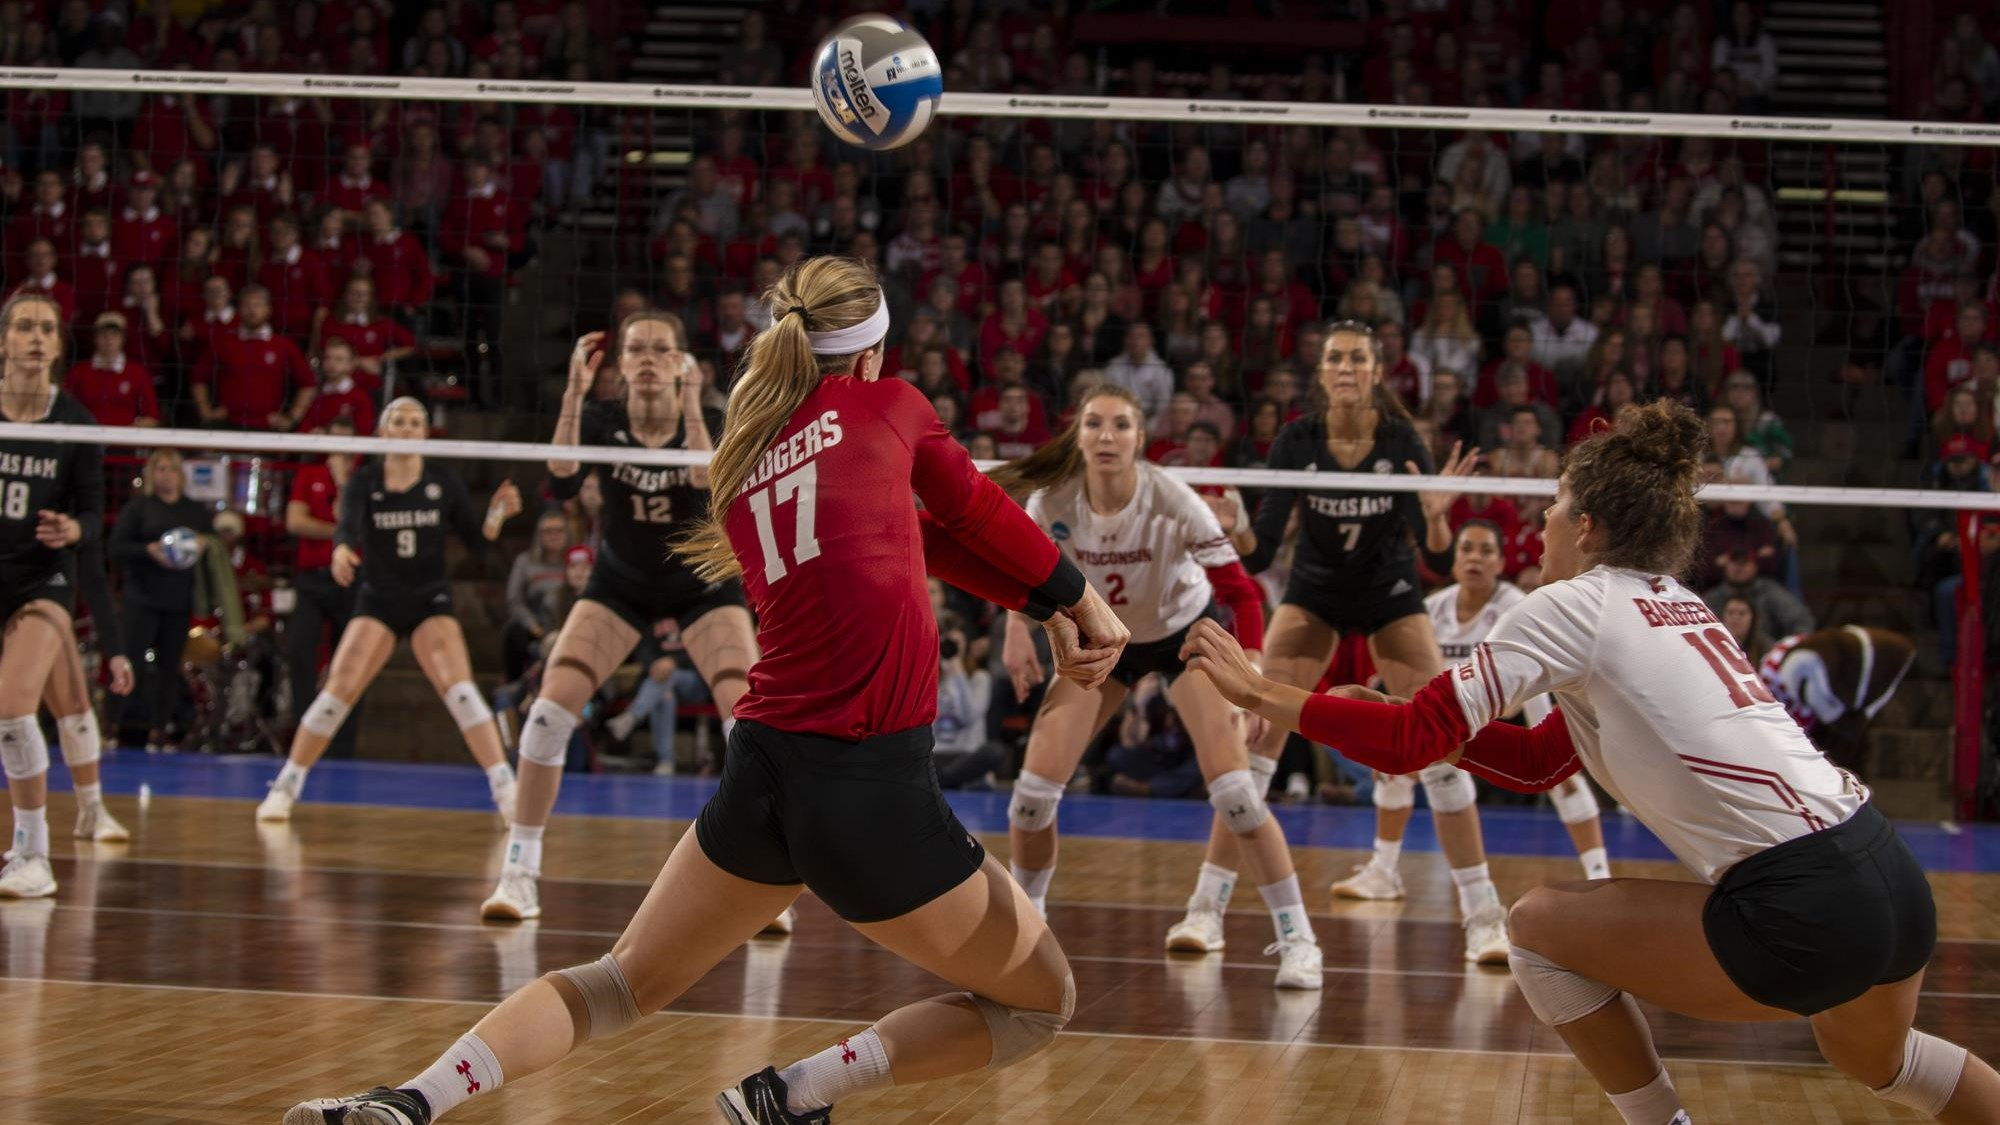 Tiffany Clark Volleyball Wisconsin Badgers The chairwoman of the wisconsin elections commission has certified biden as the winner in wisconsin, formalizing his narrow victory in a state trump carried four years ago. tiffany clark volleyball wisconsin